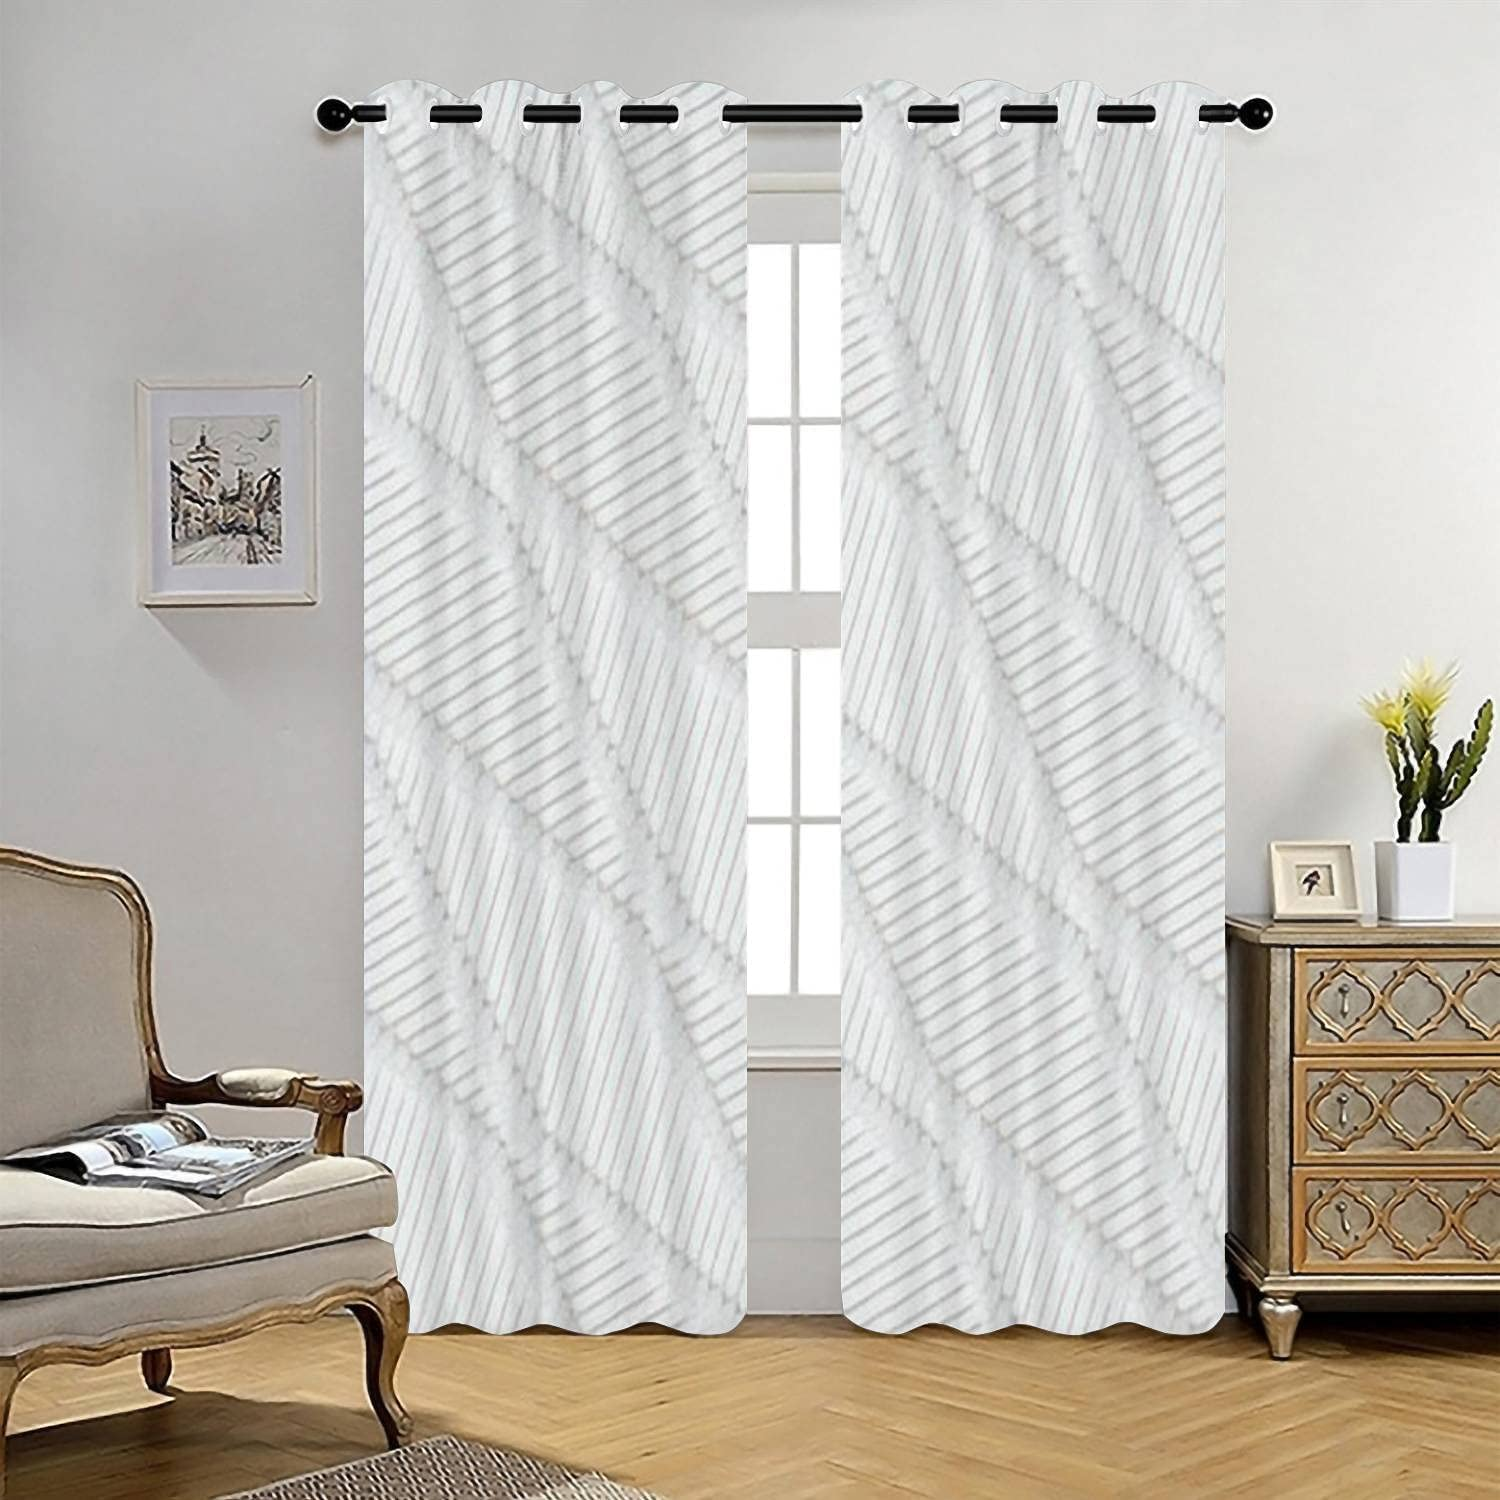 Blackout Nashville-Davidson Mall Curtains Seamless Tech Insulated Thermal Manufacturer regenerated product Lined Pattern